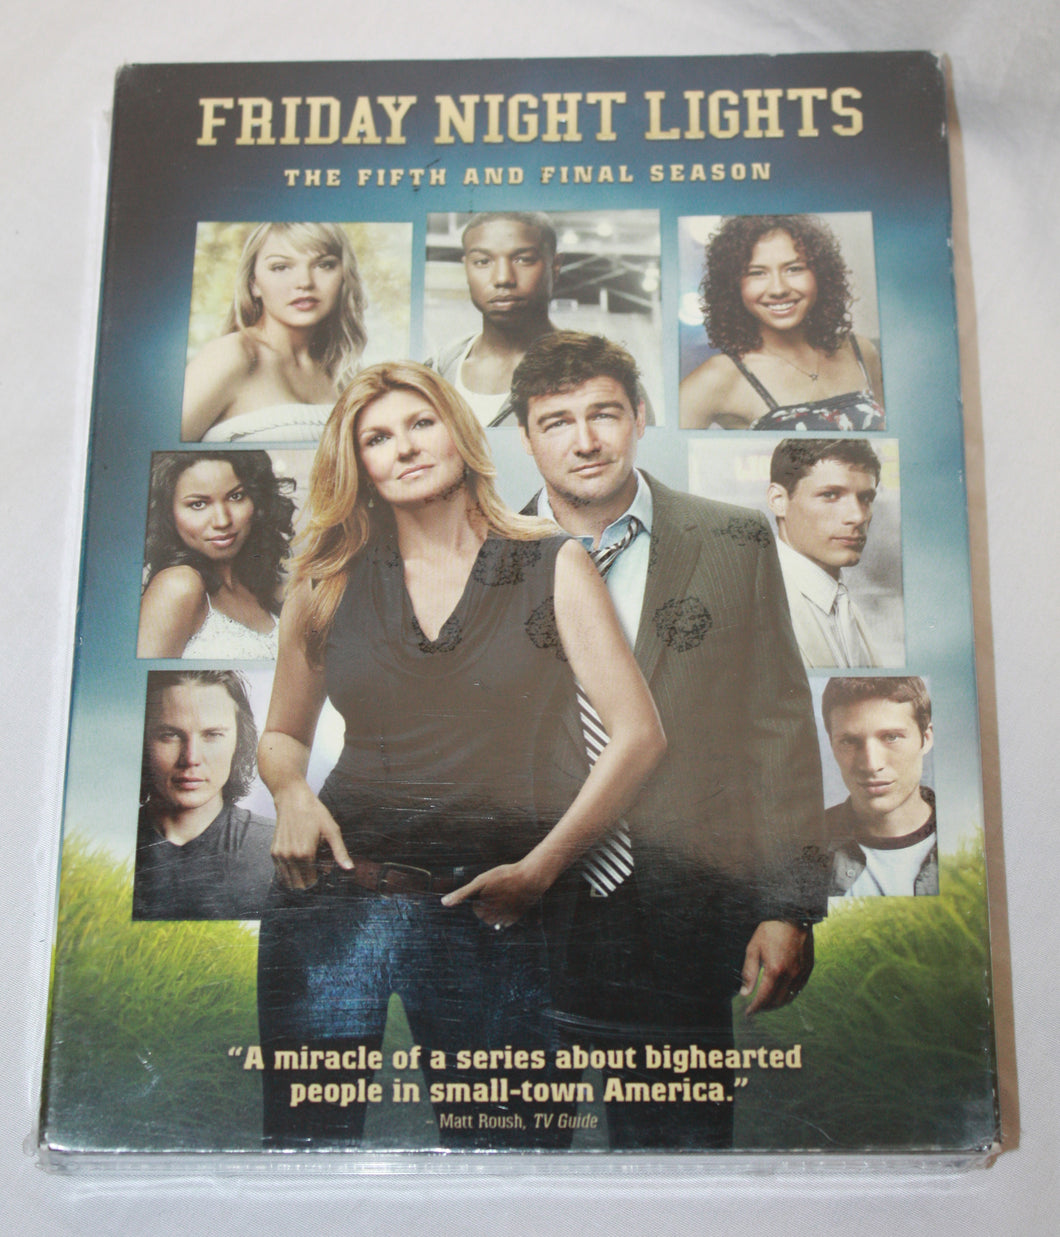 Friday Night Lights 5th Complete Season (final Season) DVD Set  (new in Shrink wrap)